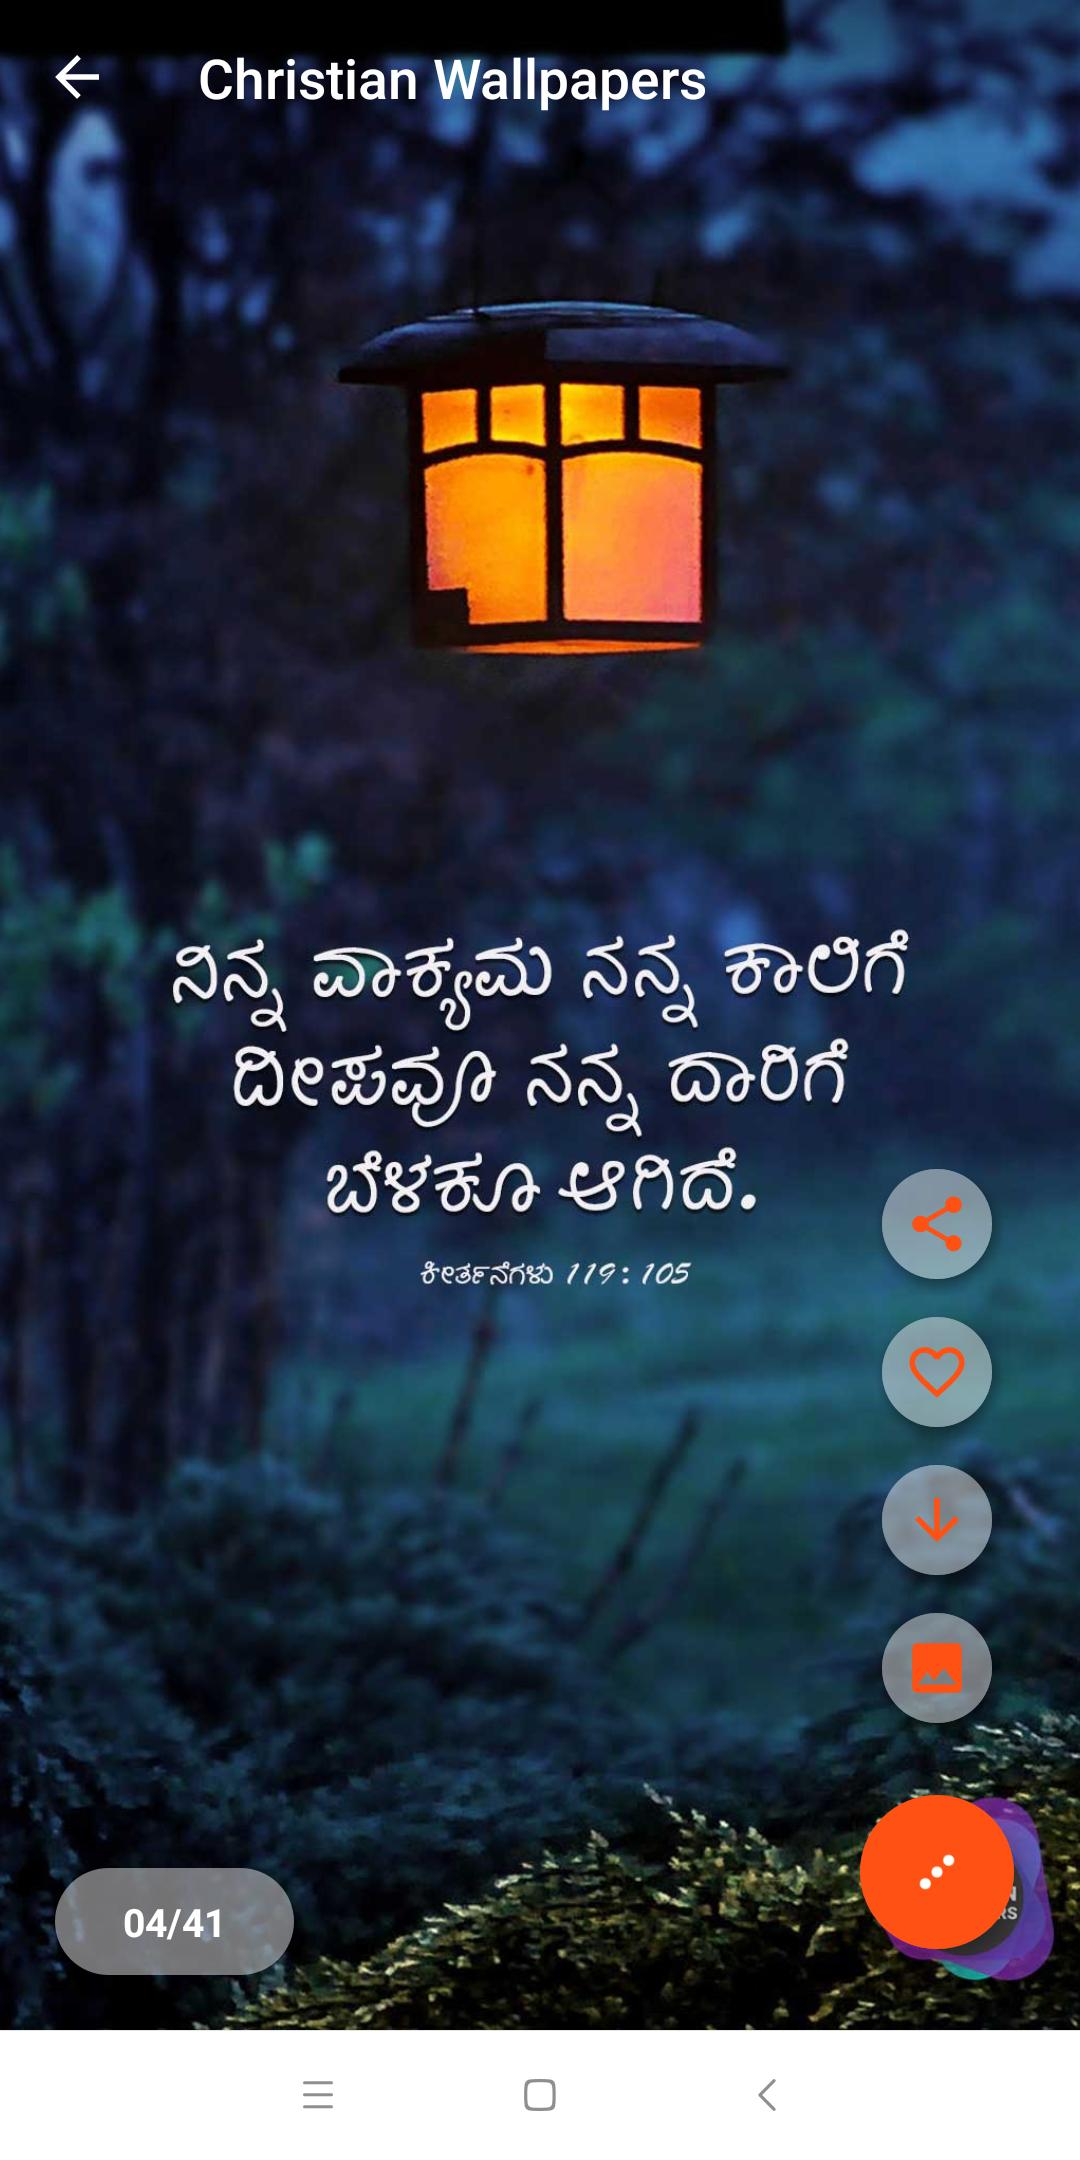 kannada christian wallpapers and status images for android apk download kannada christian wallpapers and status